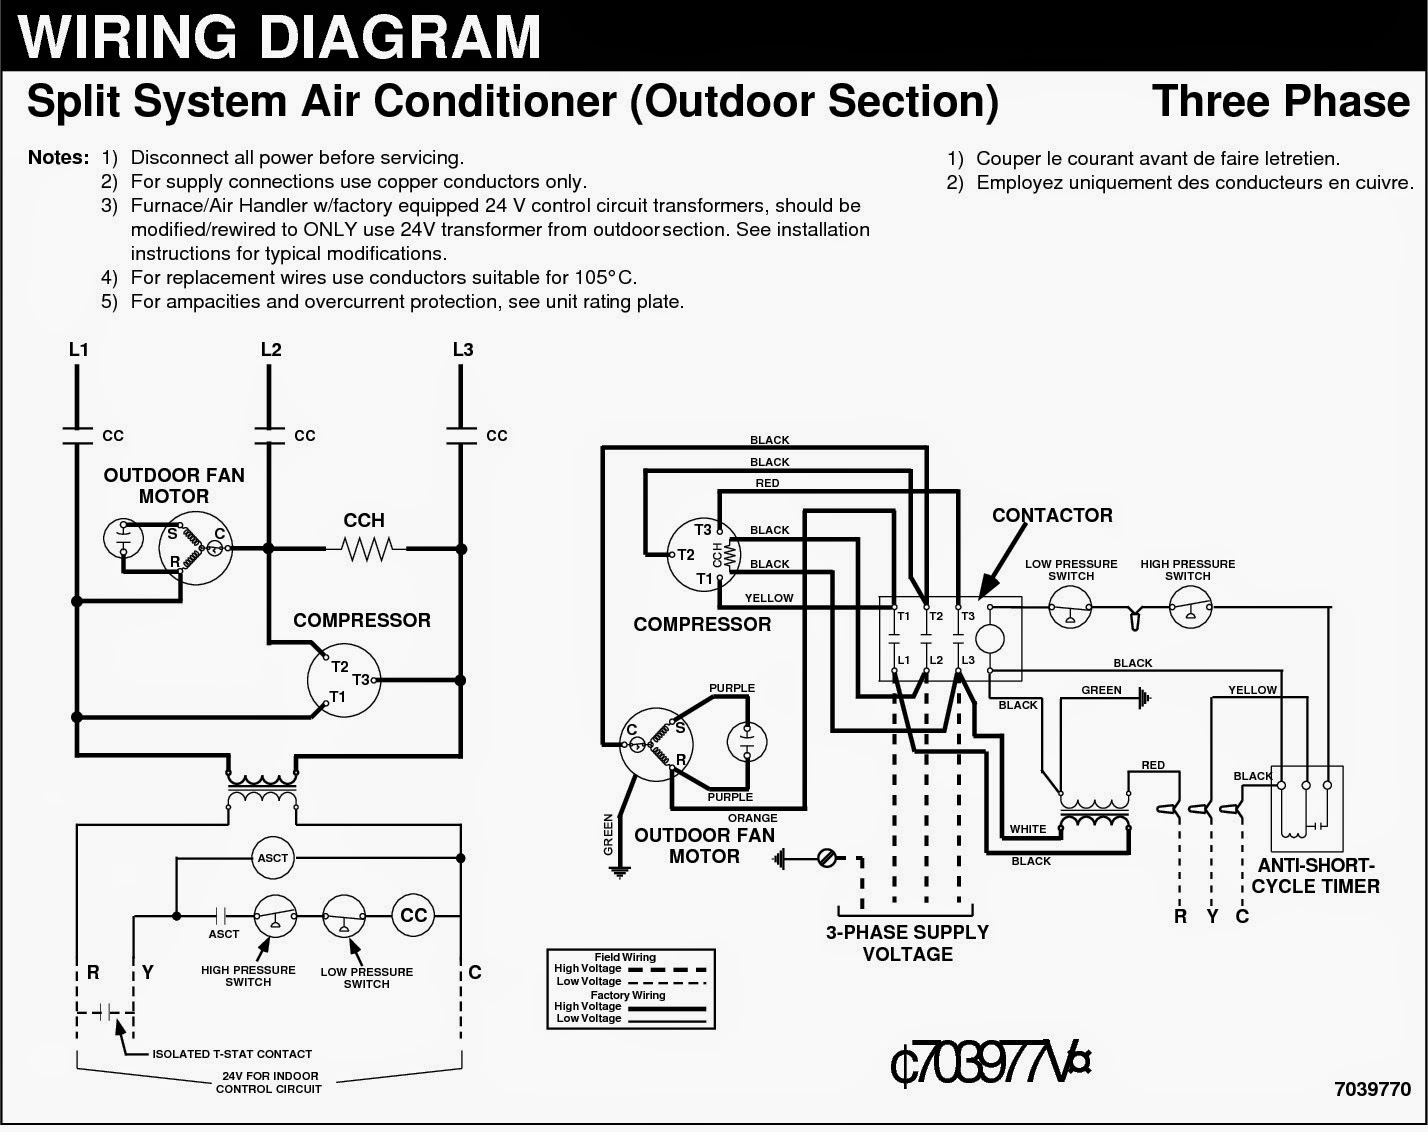 3+phase electrical wiring diagrams for air conditioning systems part two typical house ac wiring diagram at edmiracle.co